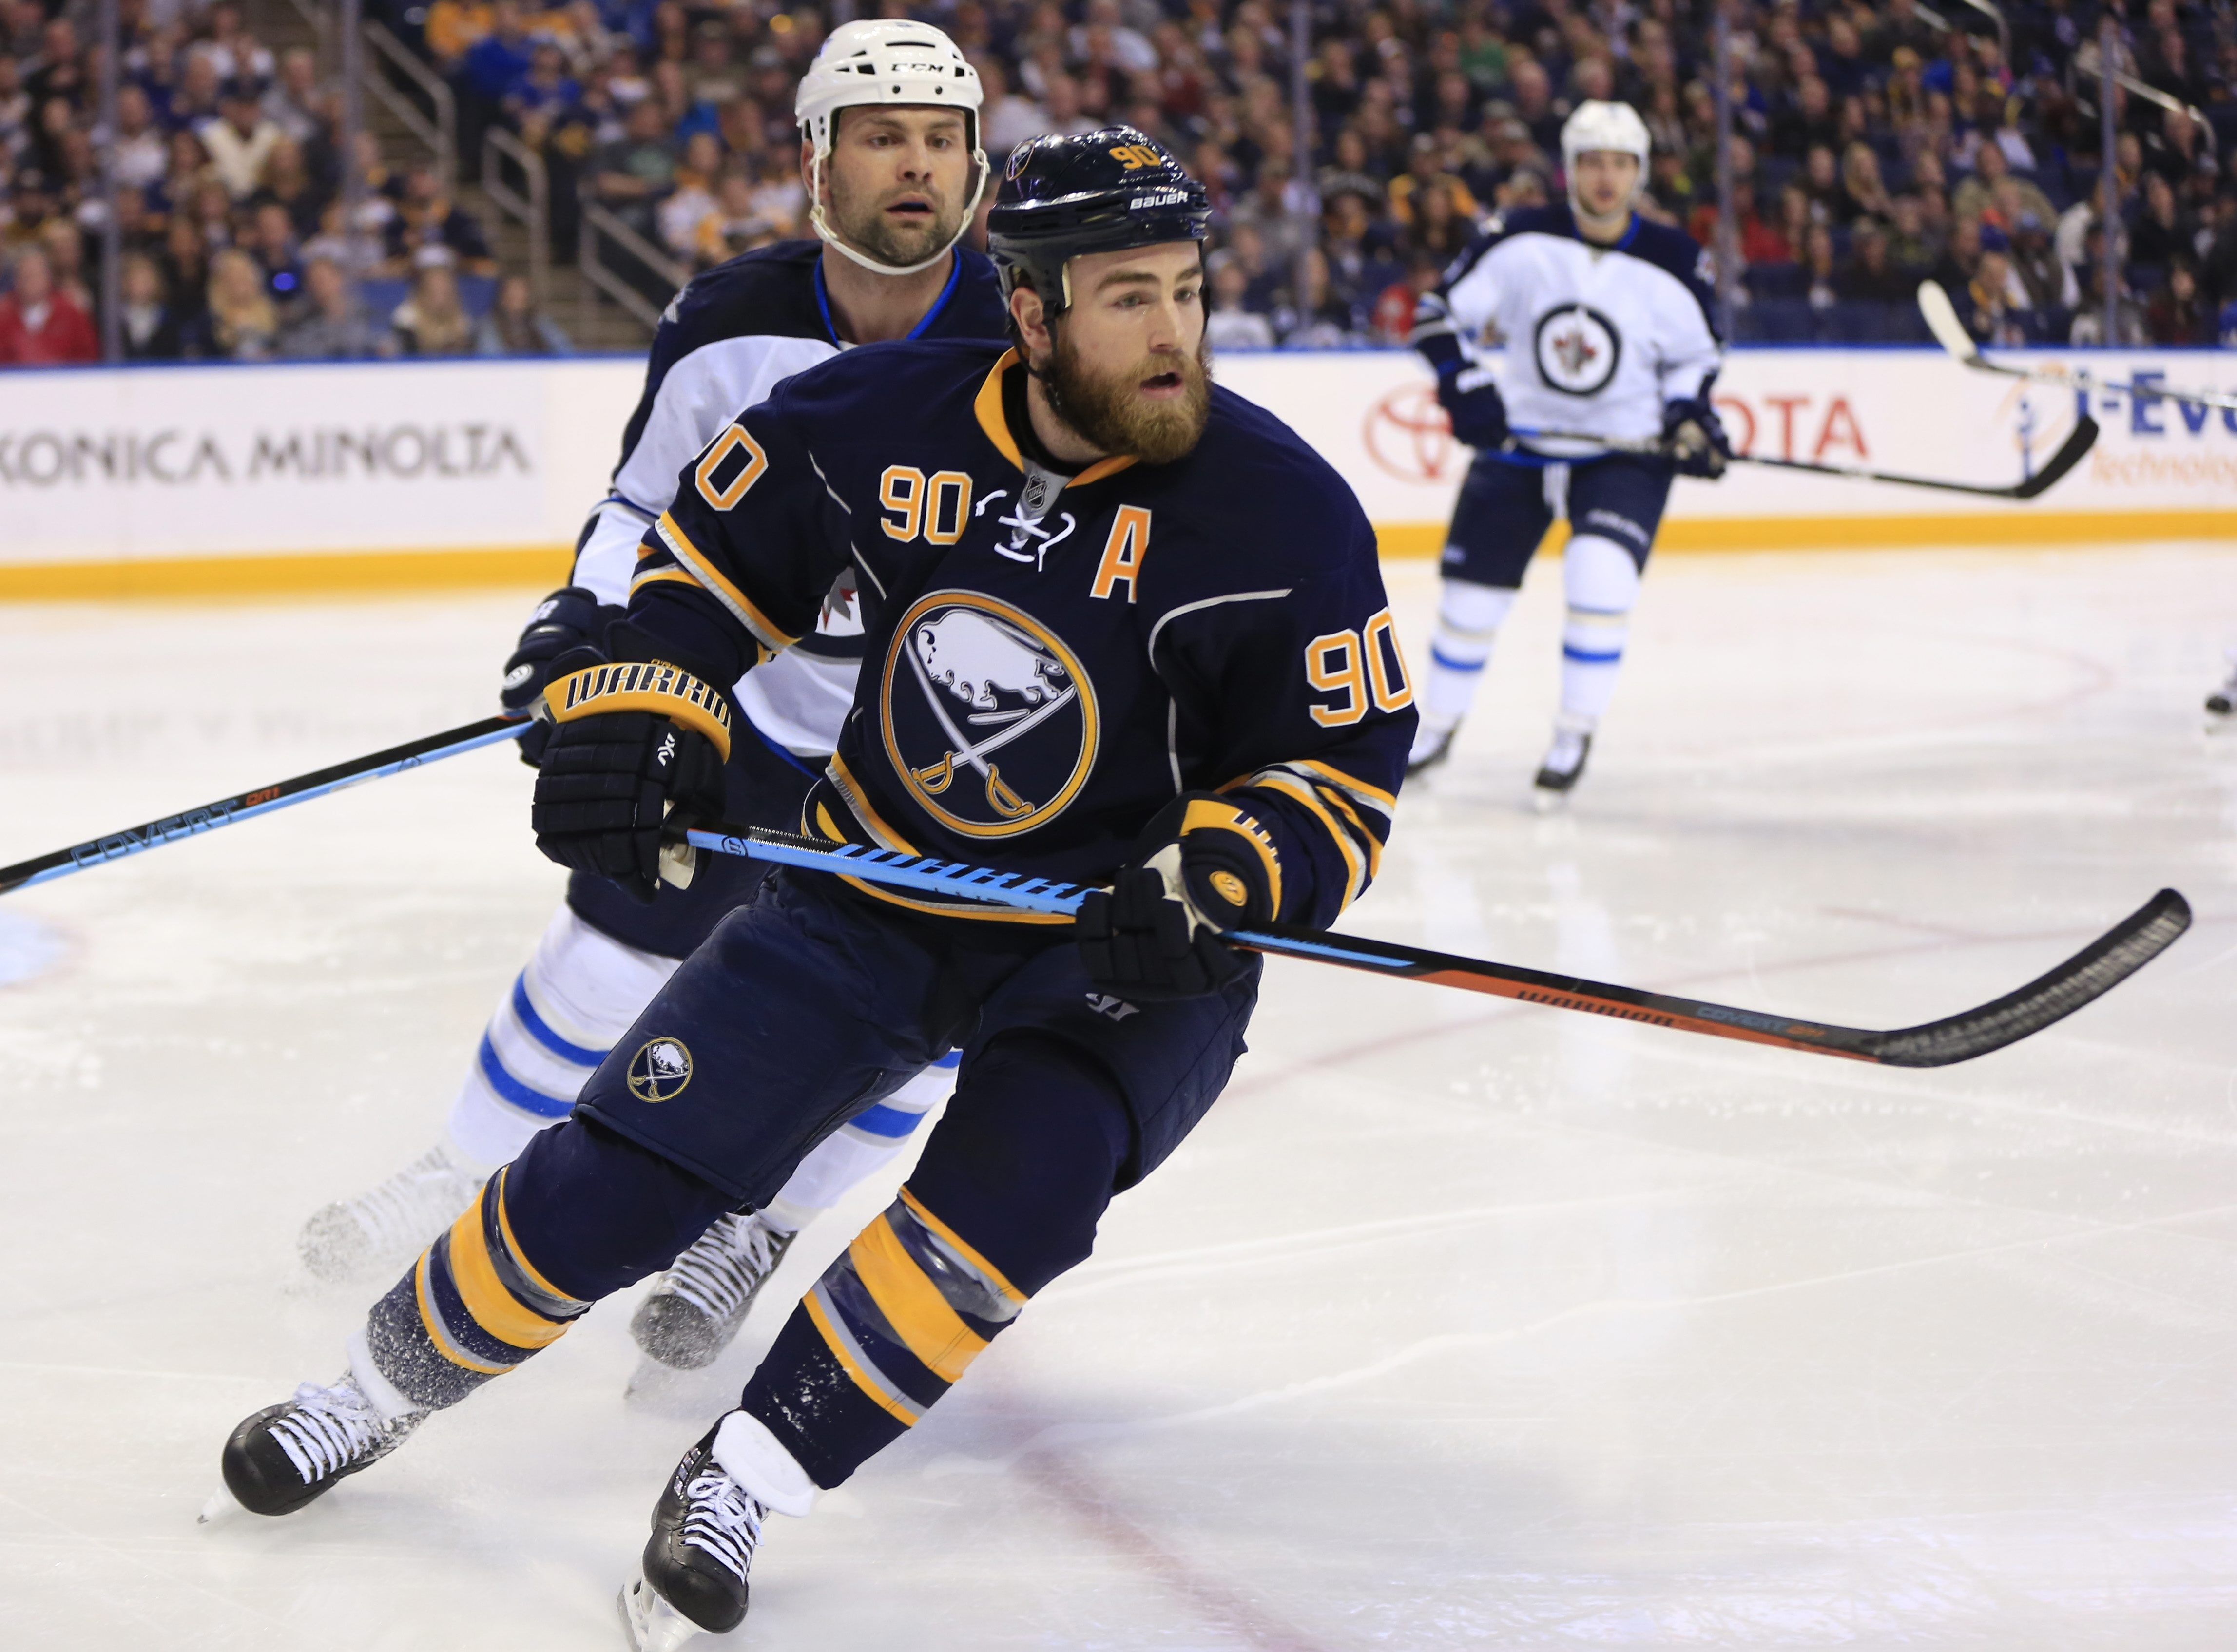 Buffalo Sabres Ryan O'Reilly skates against the Winnipeg Jets during first period action at the First Niagara Center on Saturday, March 26, 2016. (Harry Scull Jr./Buffalo News)